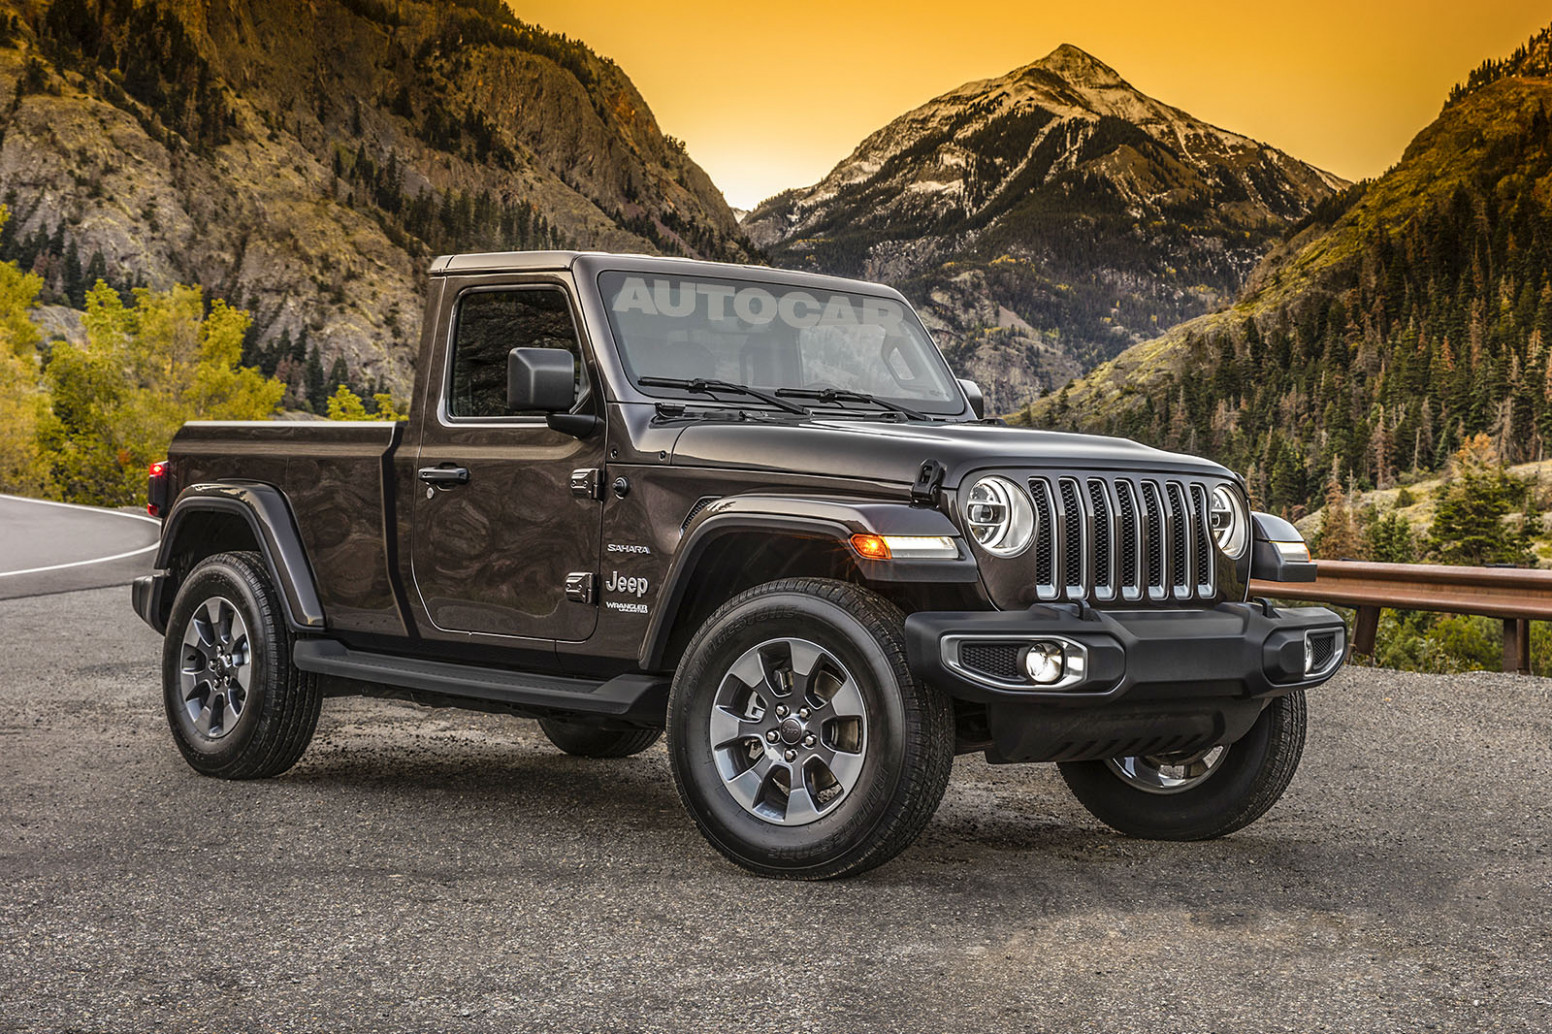 Redesign and Concept 2022 Jeep Wrangler Unlimited